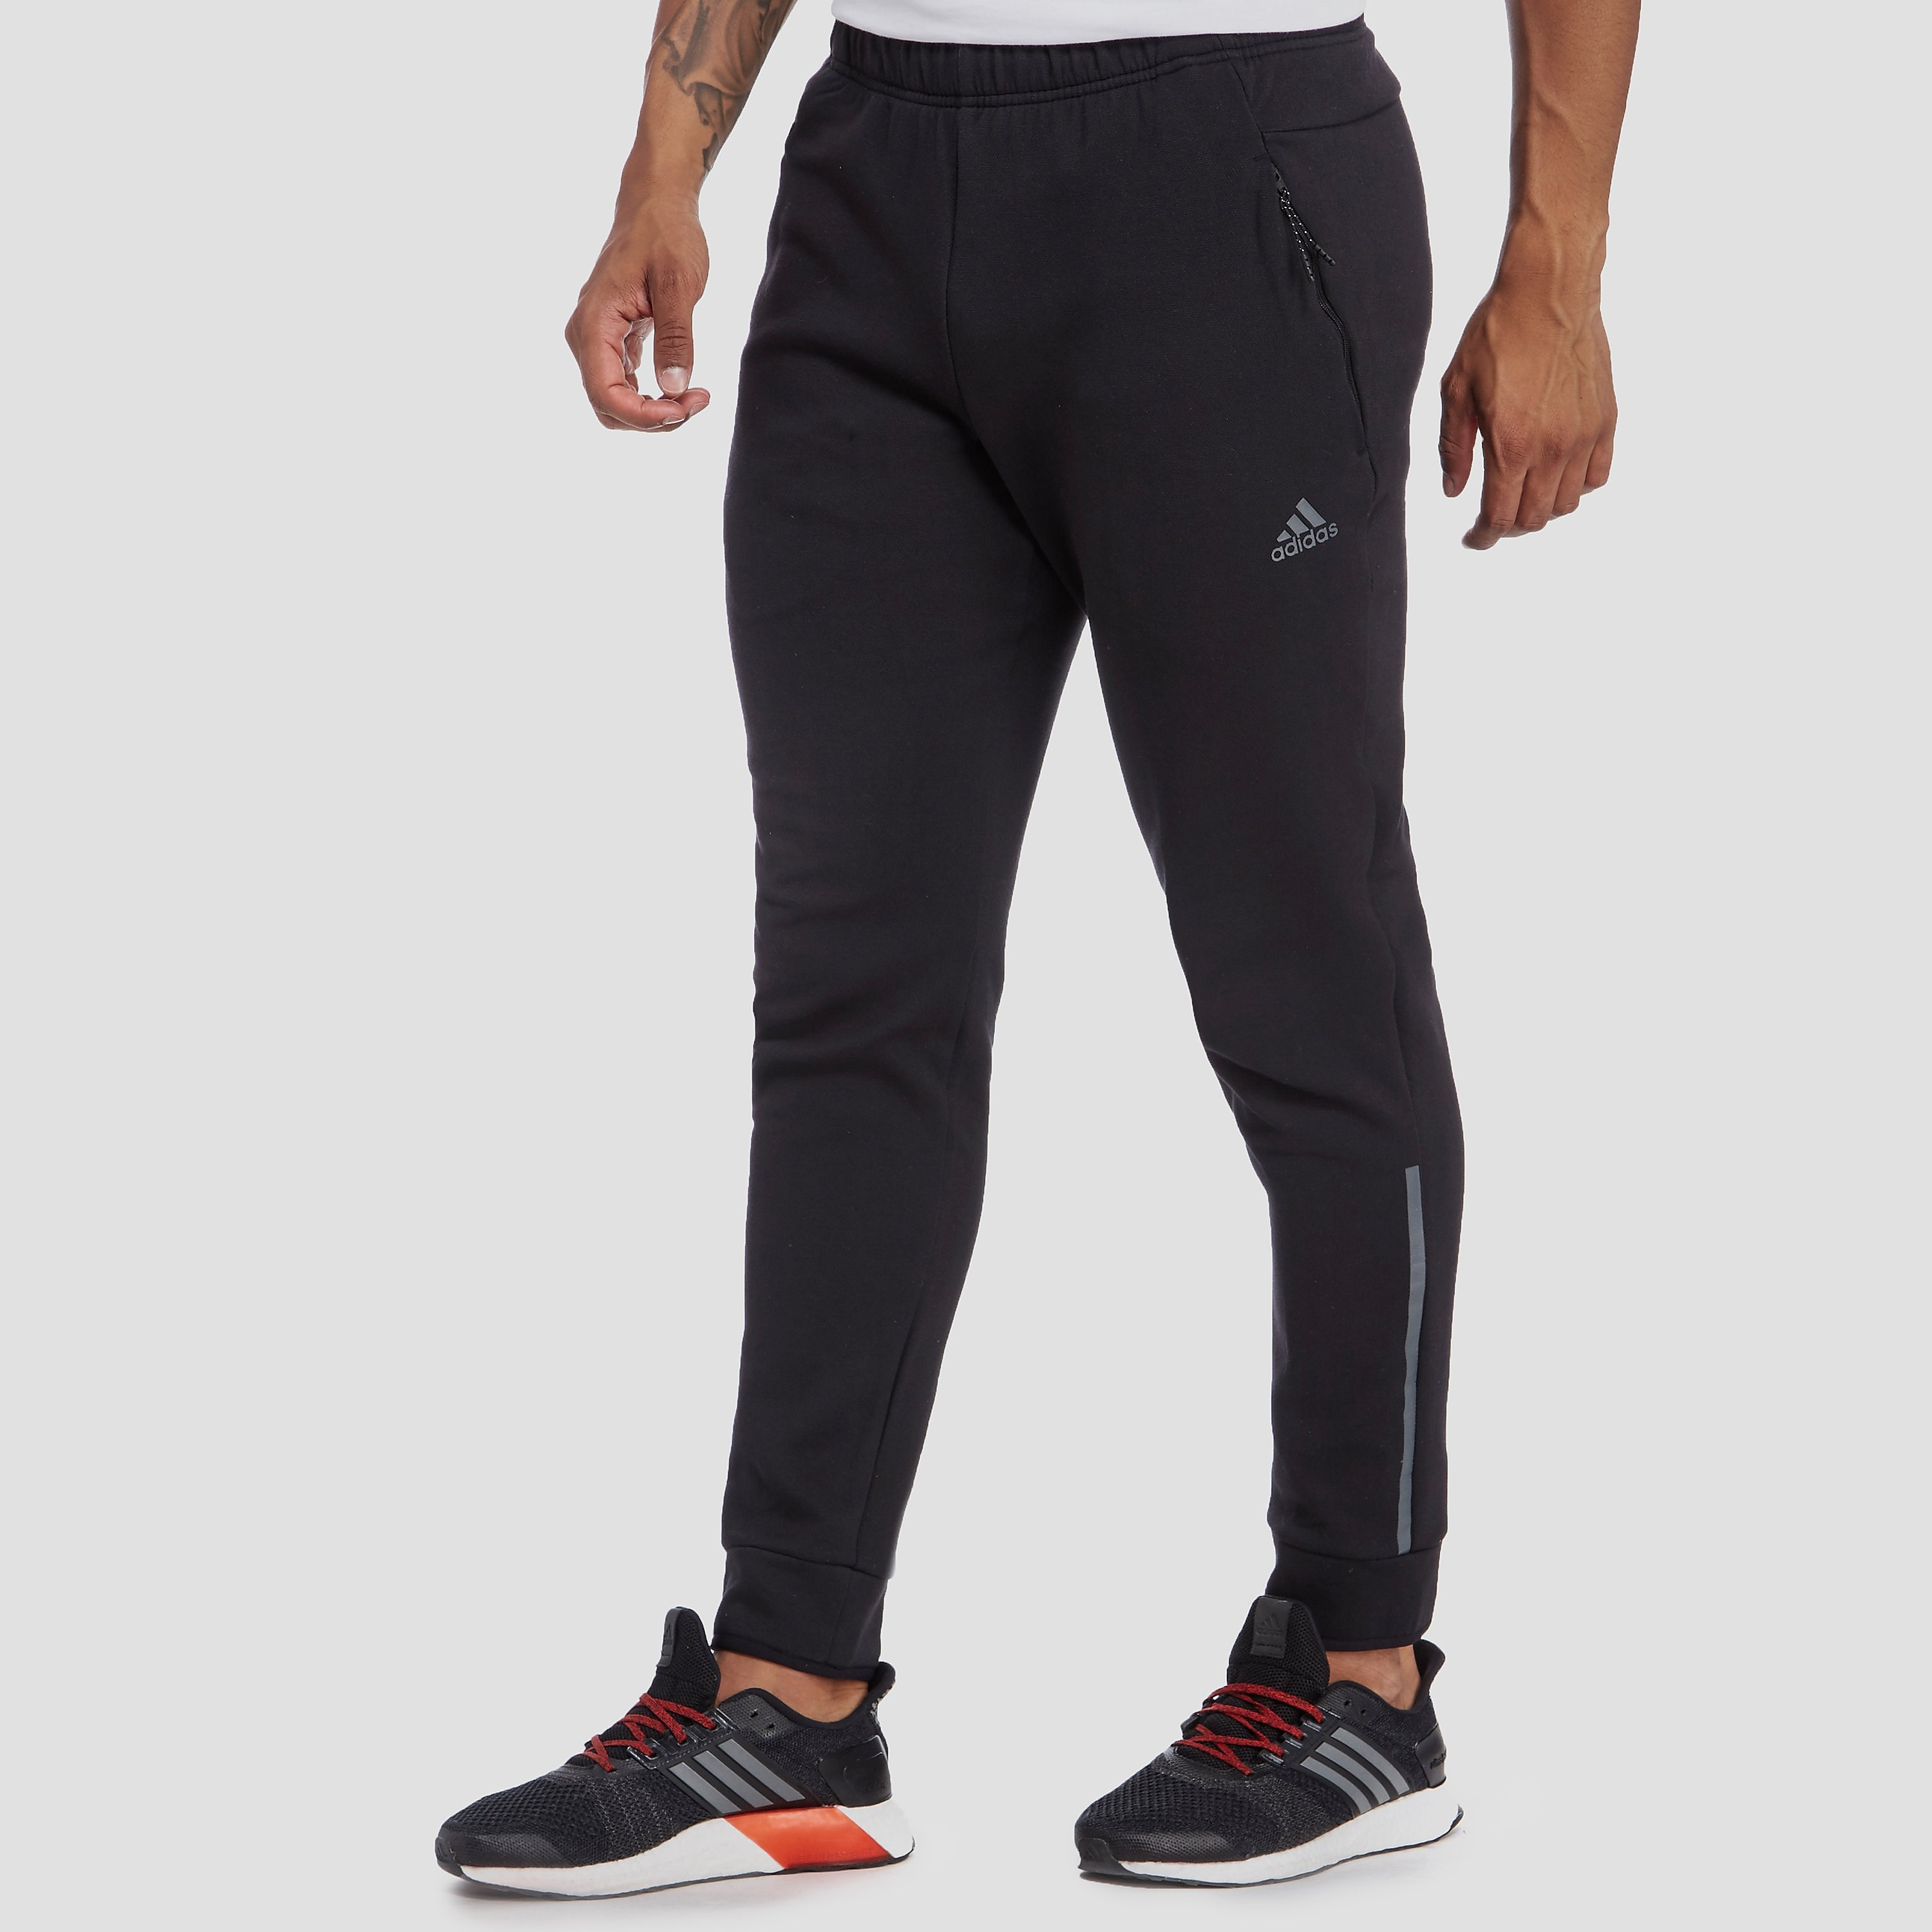 adidas Z.N.E Men's Fleece Pants